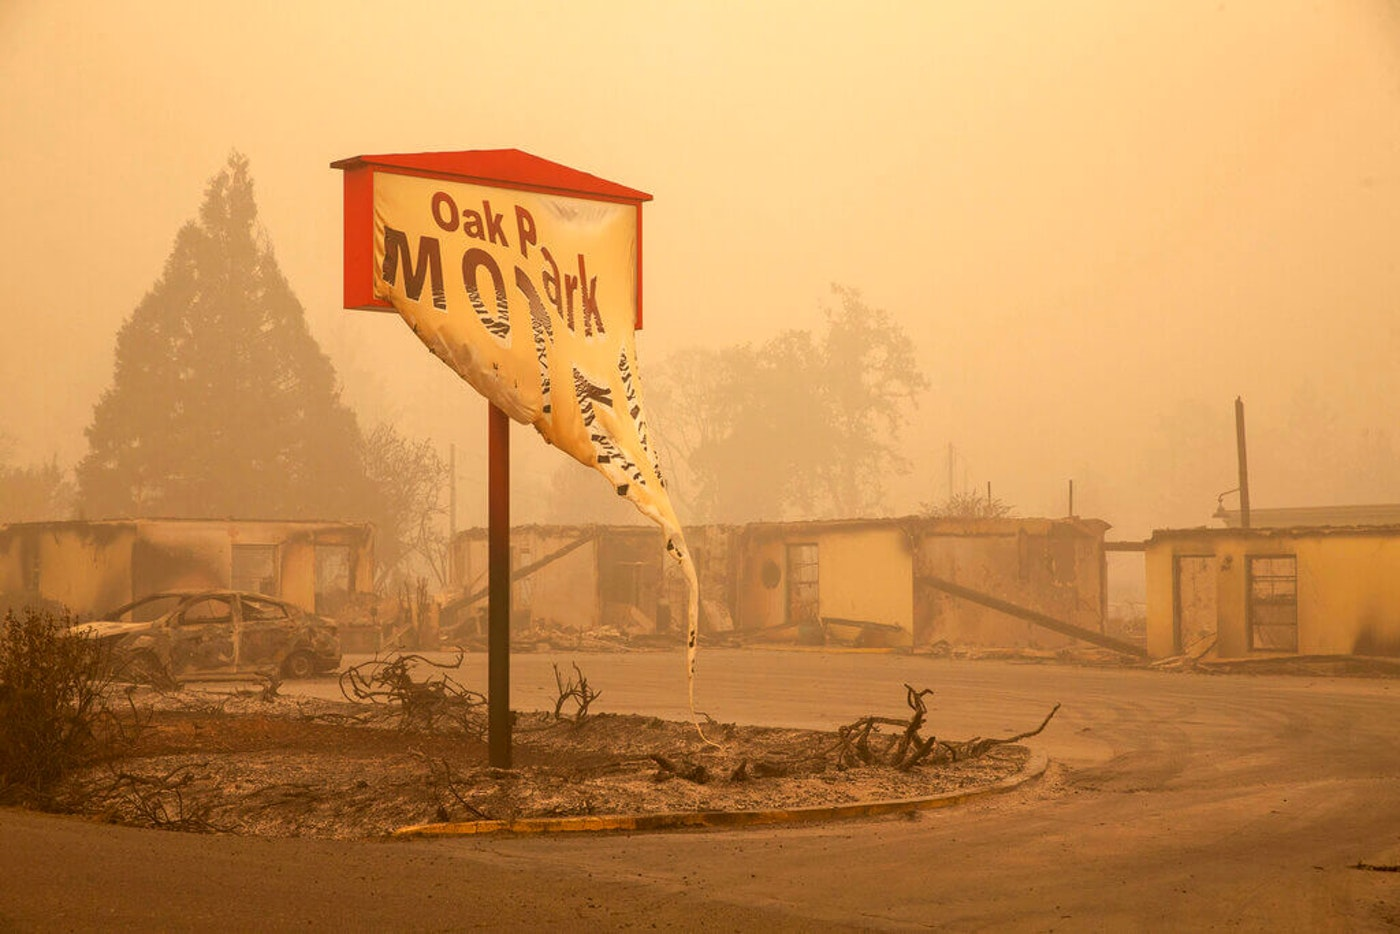 The Oak Park Motel was destroyed by the flames of the Beachie Creek Fire east of Salem, Ore., Sunday, Sept. 13, 2020.  (Rob Schumacher/Statesman-Journal via AP, Pool)